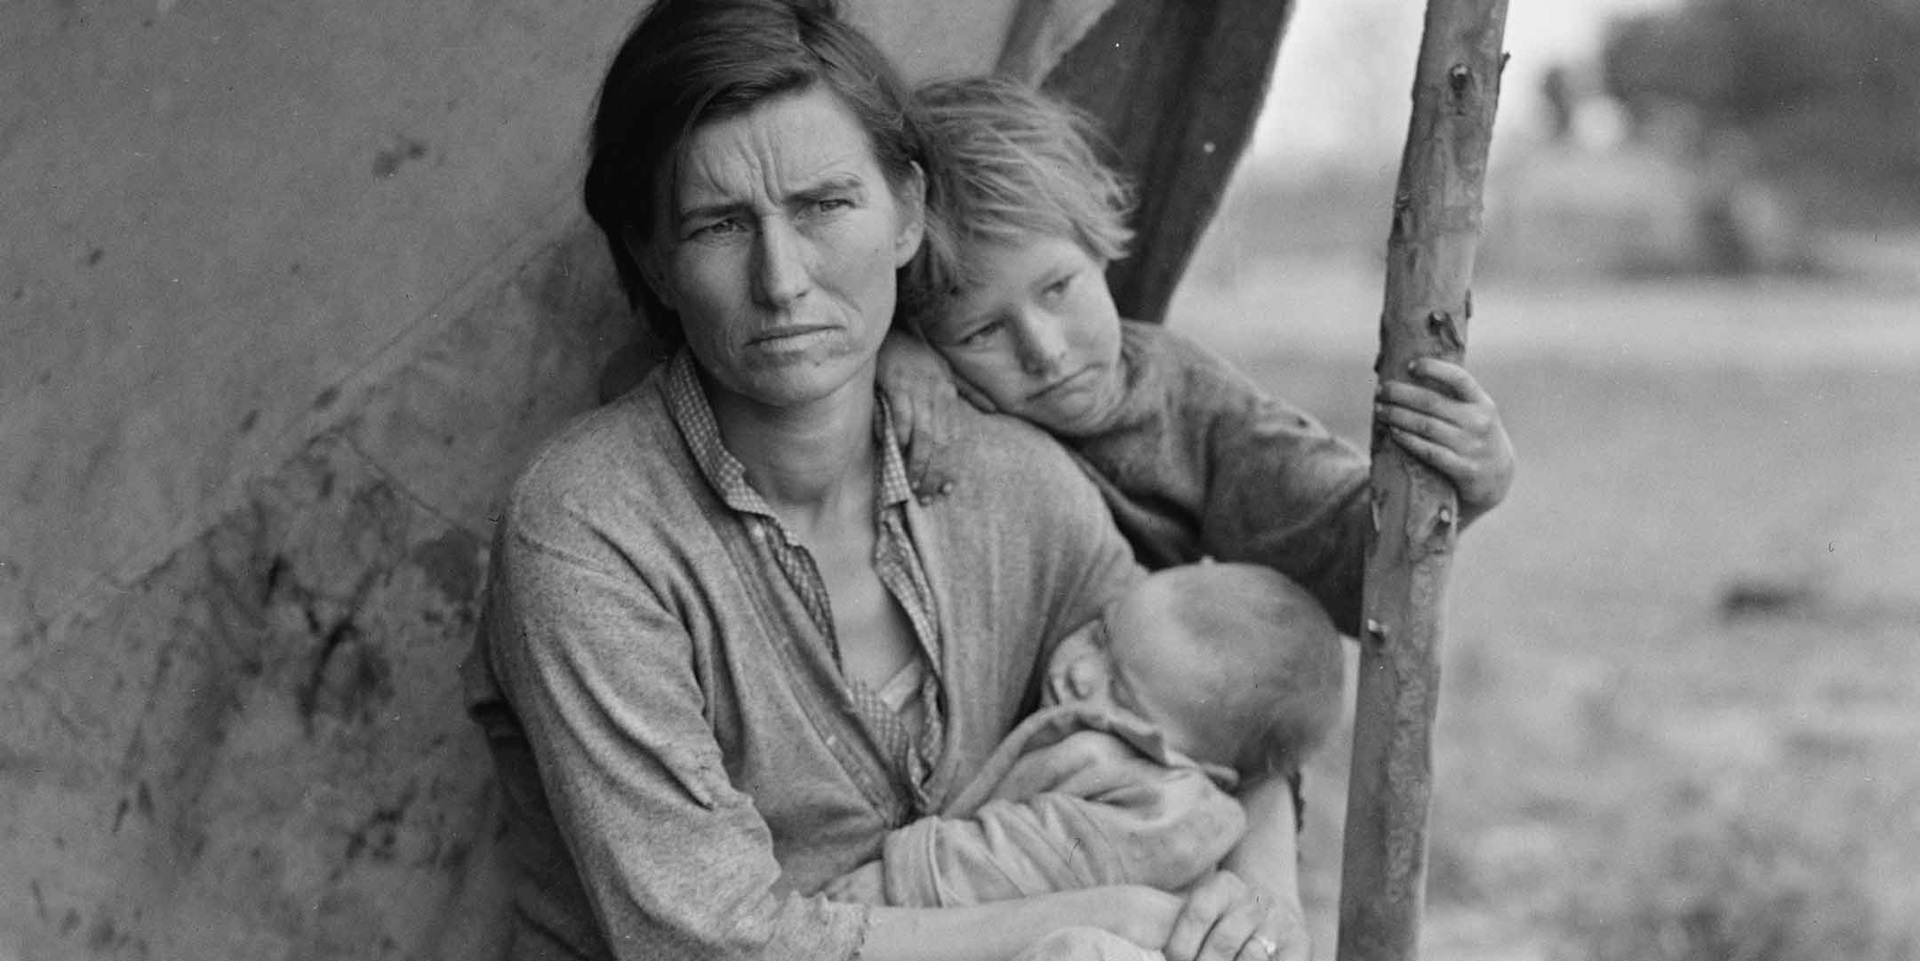 Migrant agricultural worker's family, Nipomo California. Photo by Dorothea Lange. February 1936. Courtesy Farm Security Administration–Office of War Information Photograph Collection, Library of Congress.